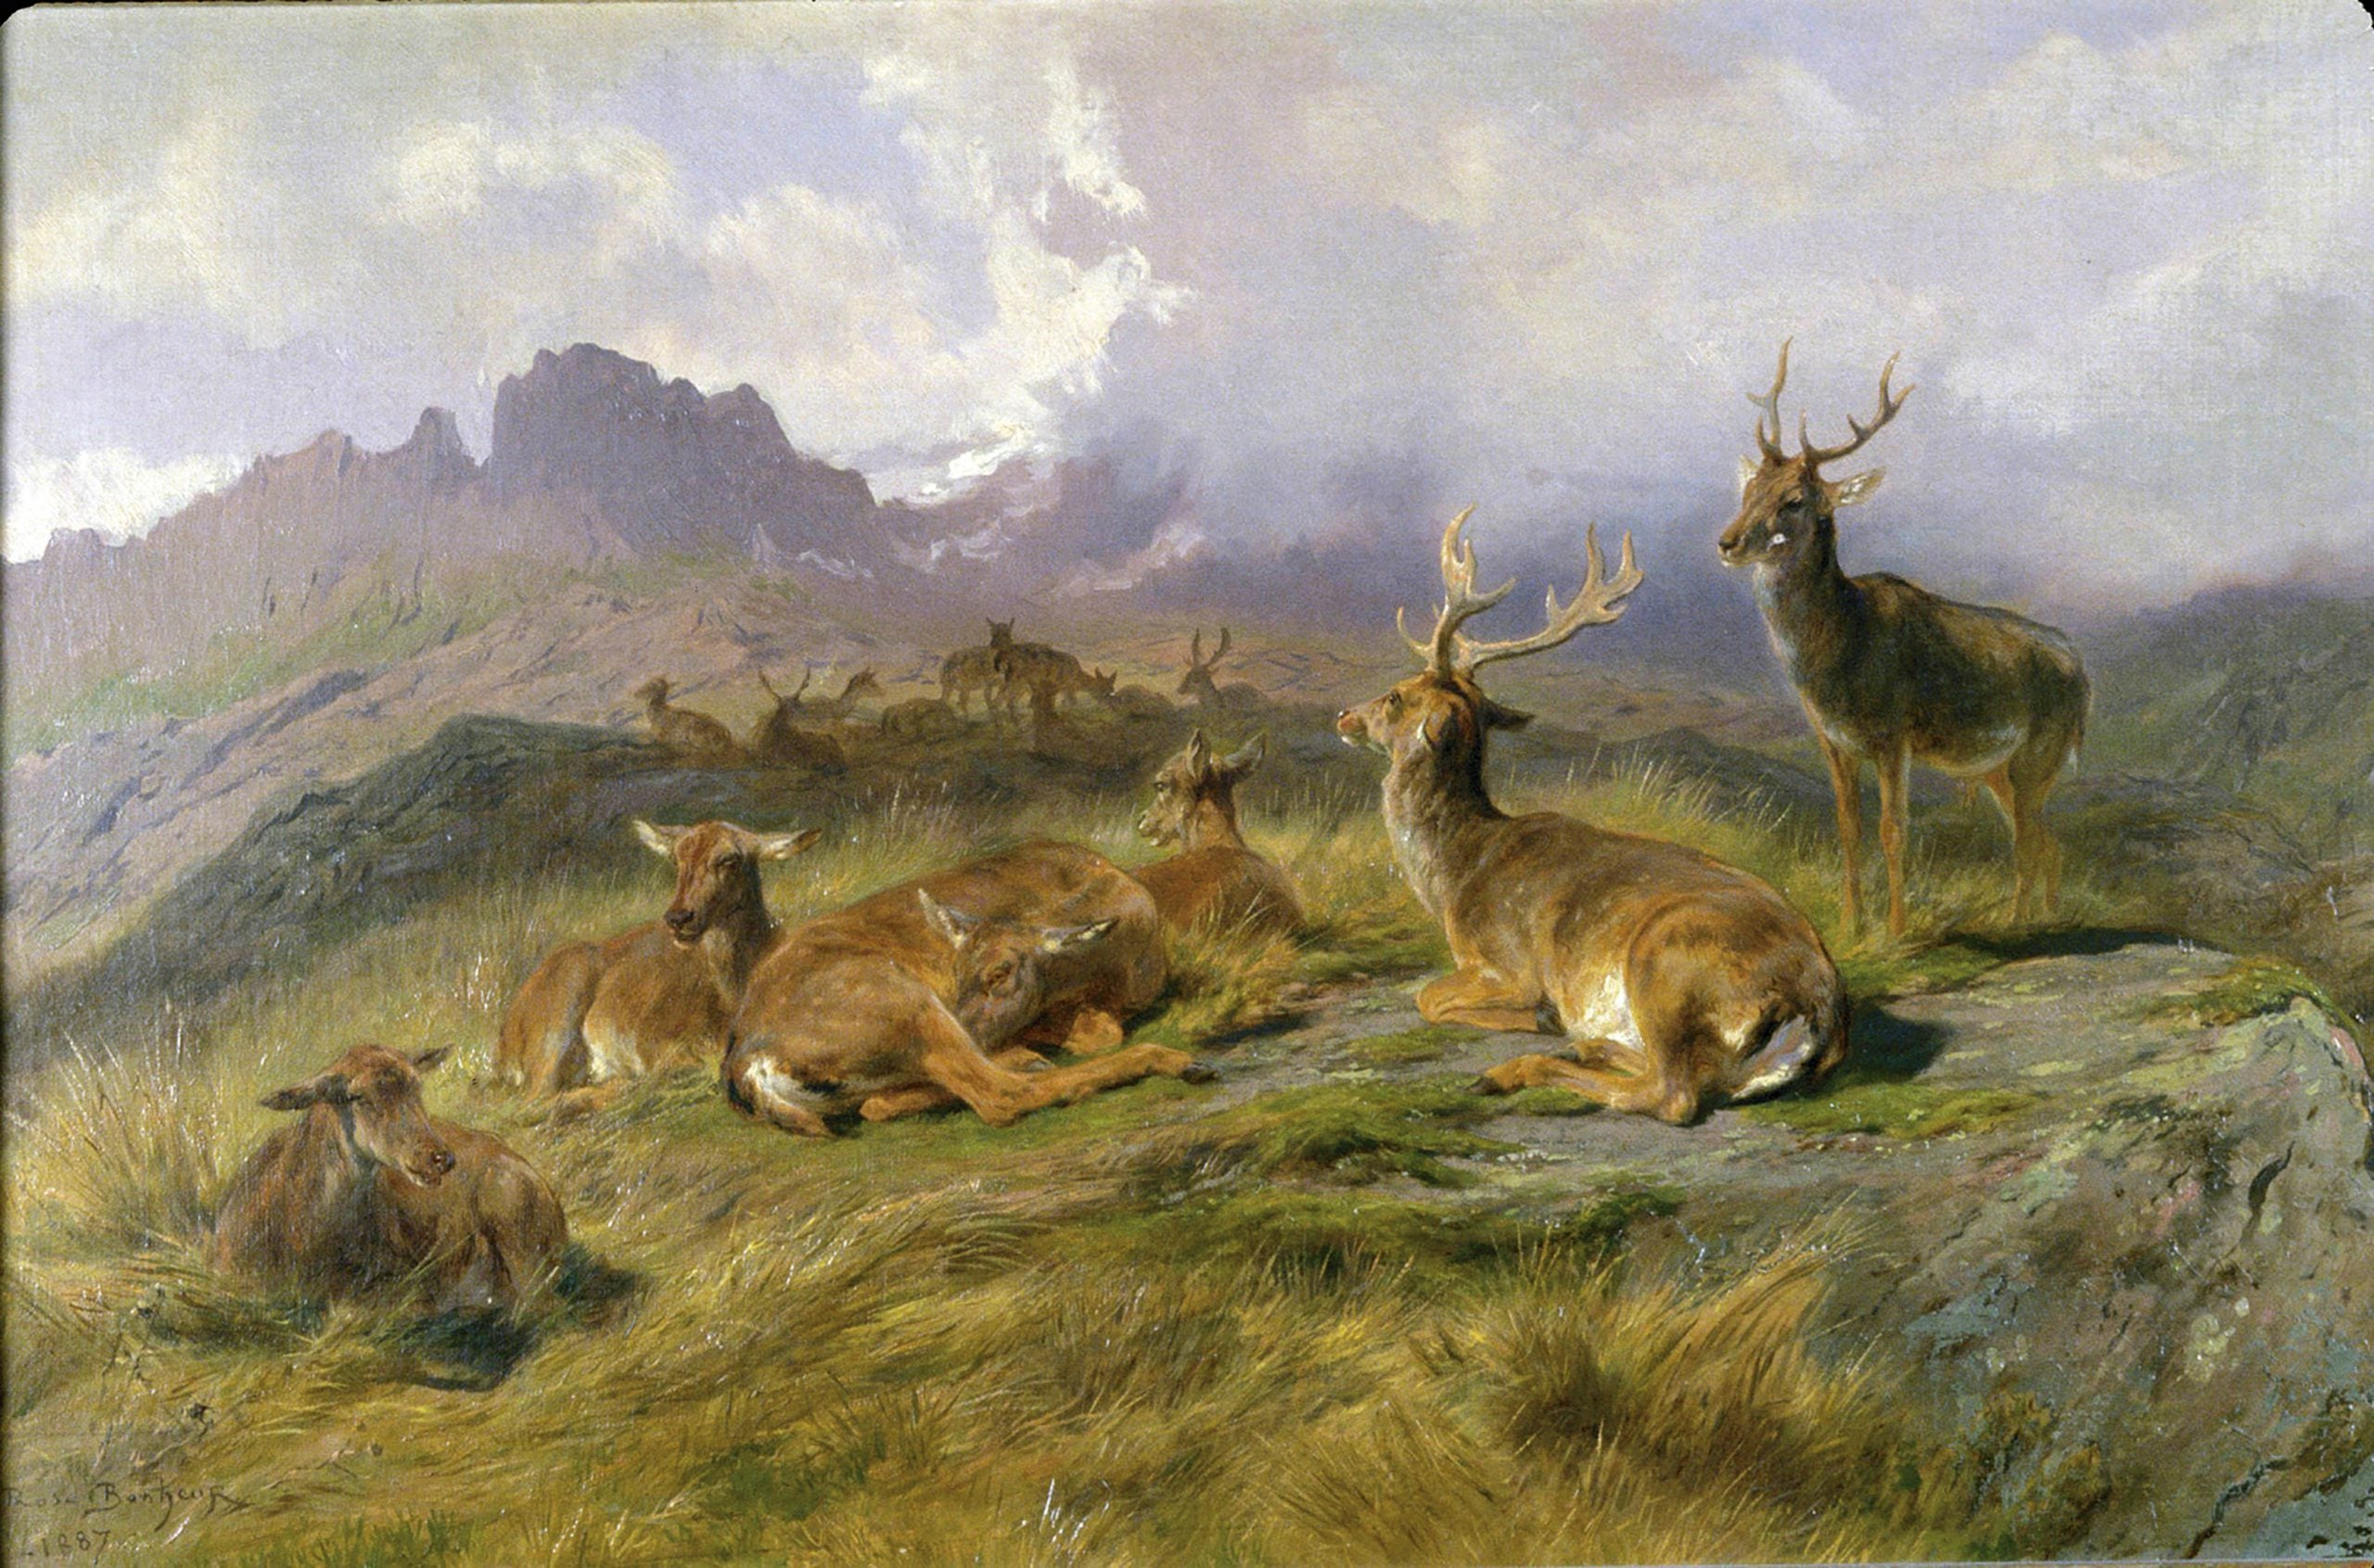 The wild pictures of Rosa Bonheur